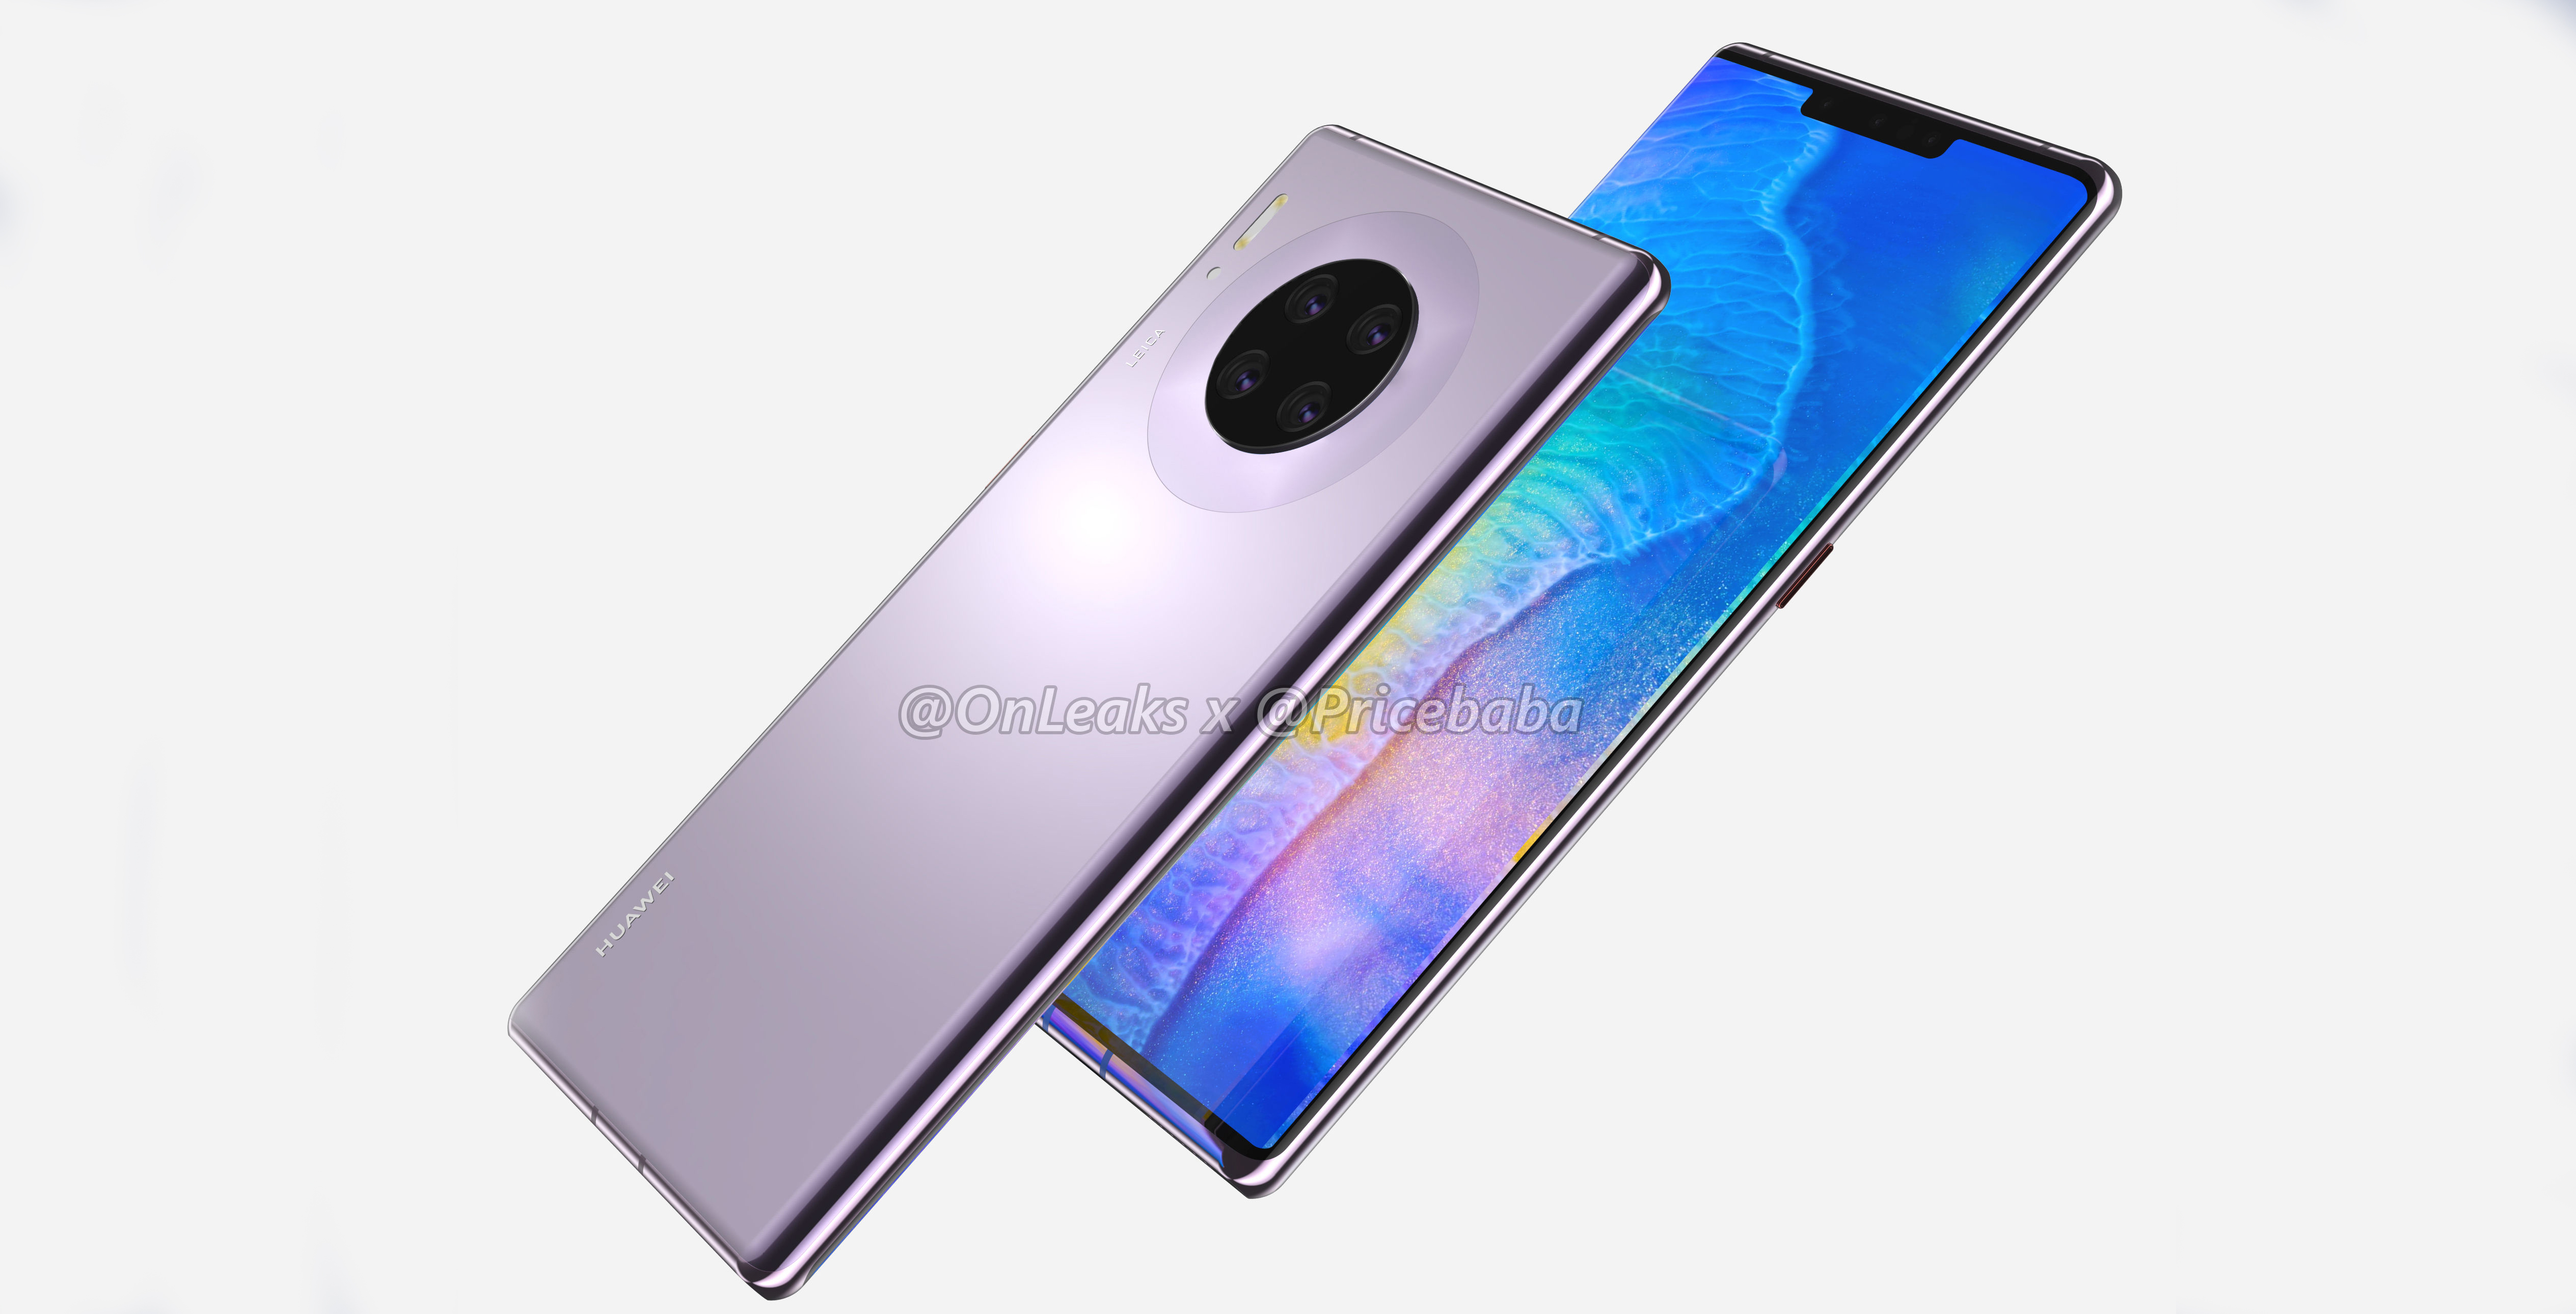 Huawei Mate 30 Pro renders suggest seven cameras, no volume